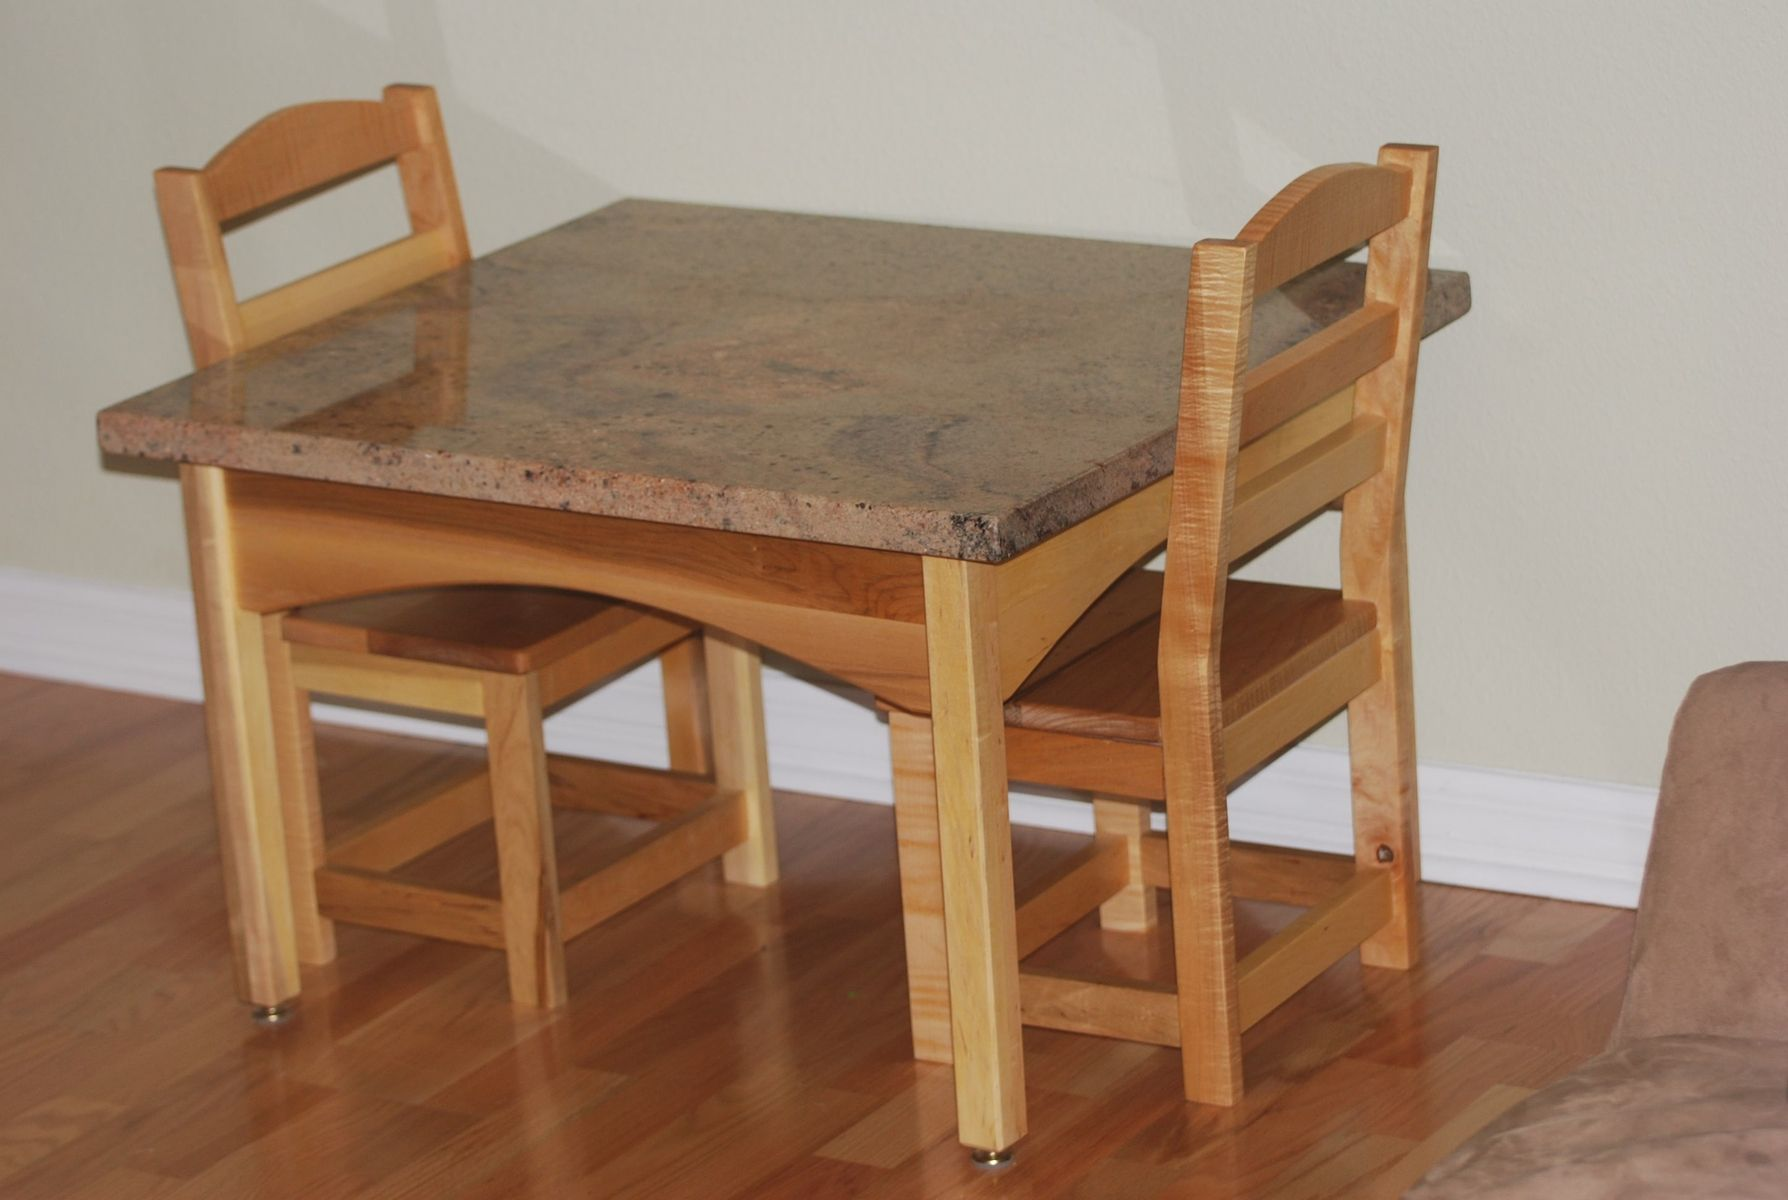 Ikea Childrens Table And Stools